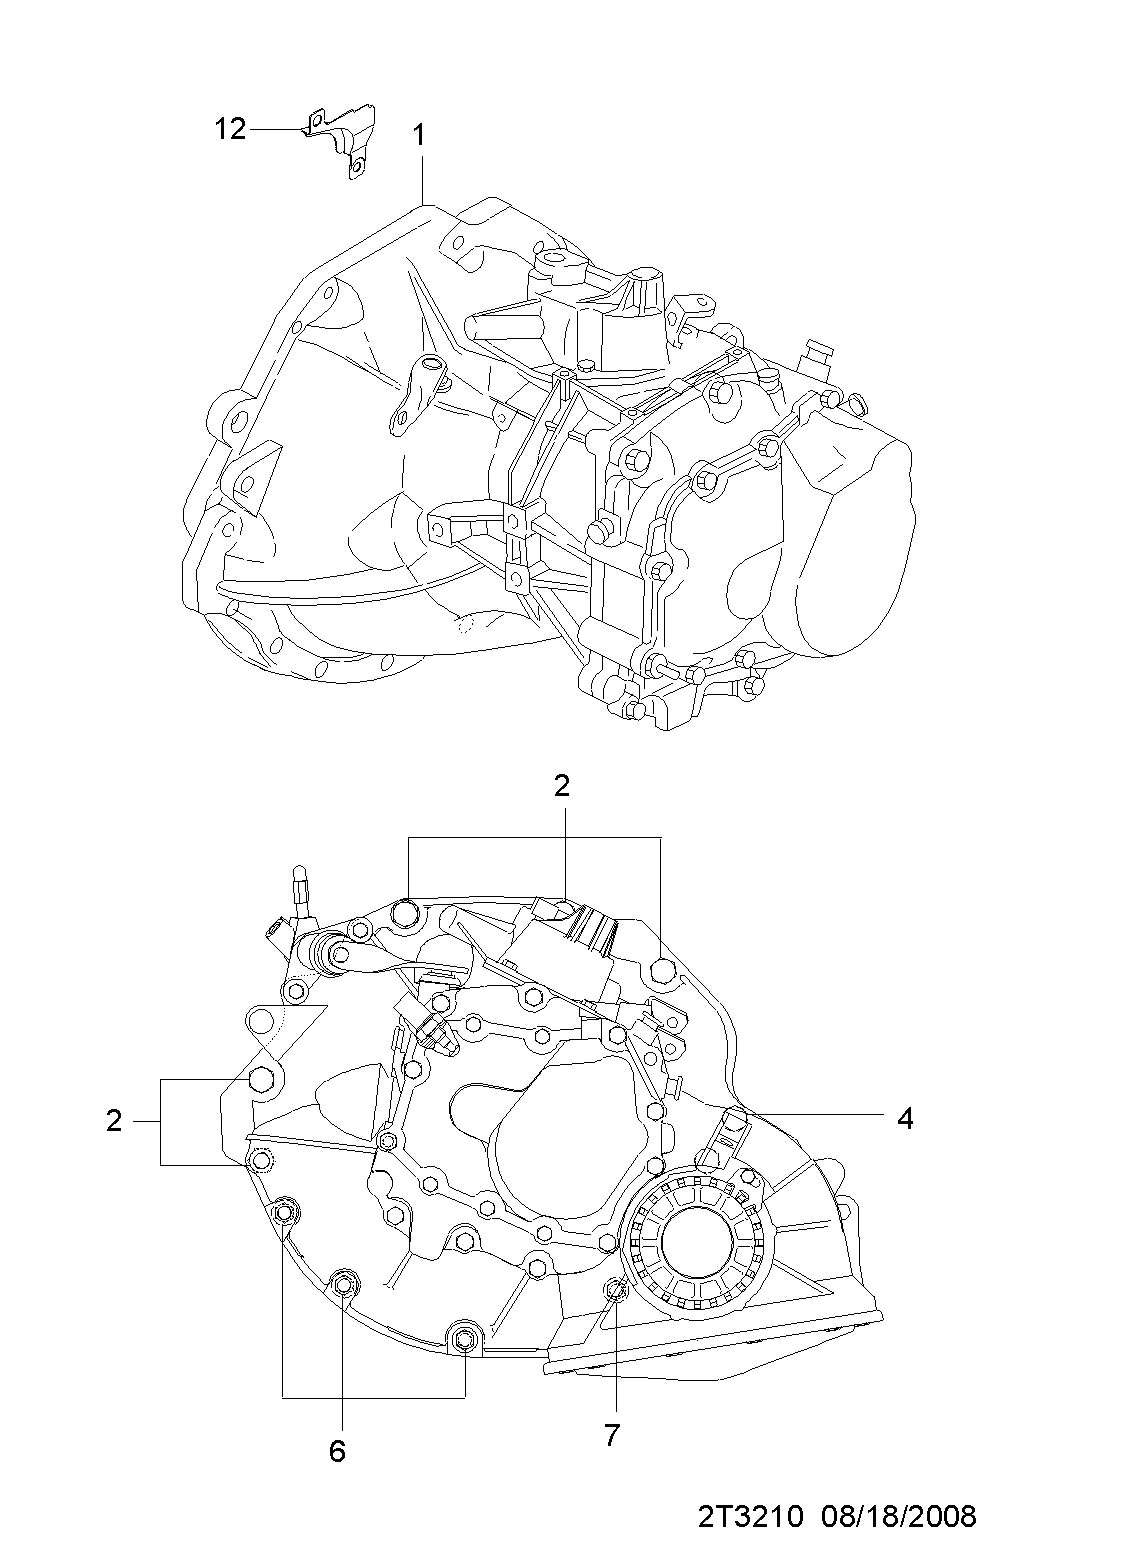 Chevy Aveo Maintenance Manual